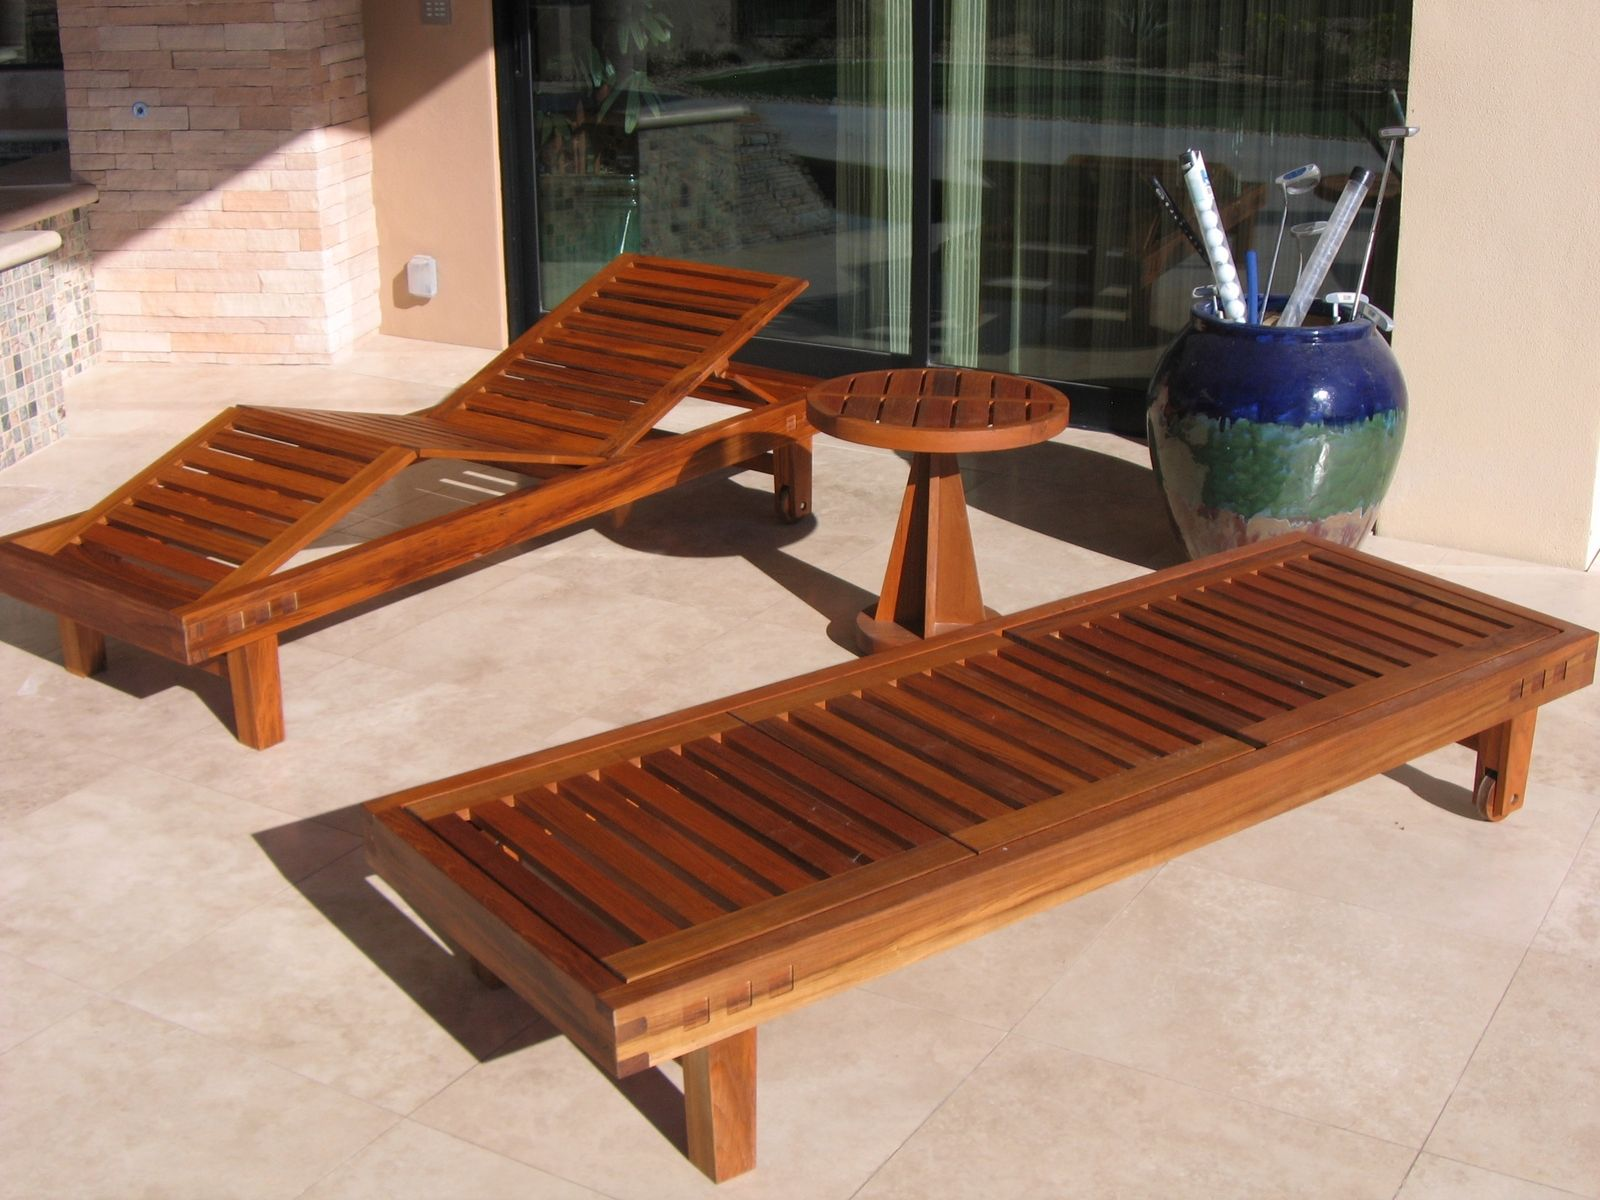 Handmade Teak Patio Furniture By Riverwoods Mill